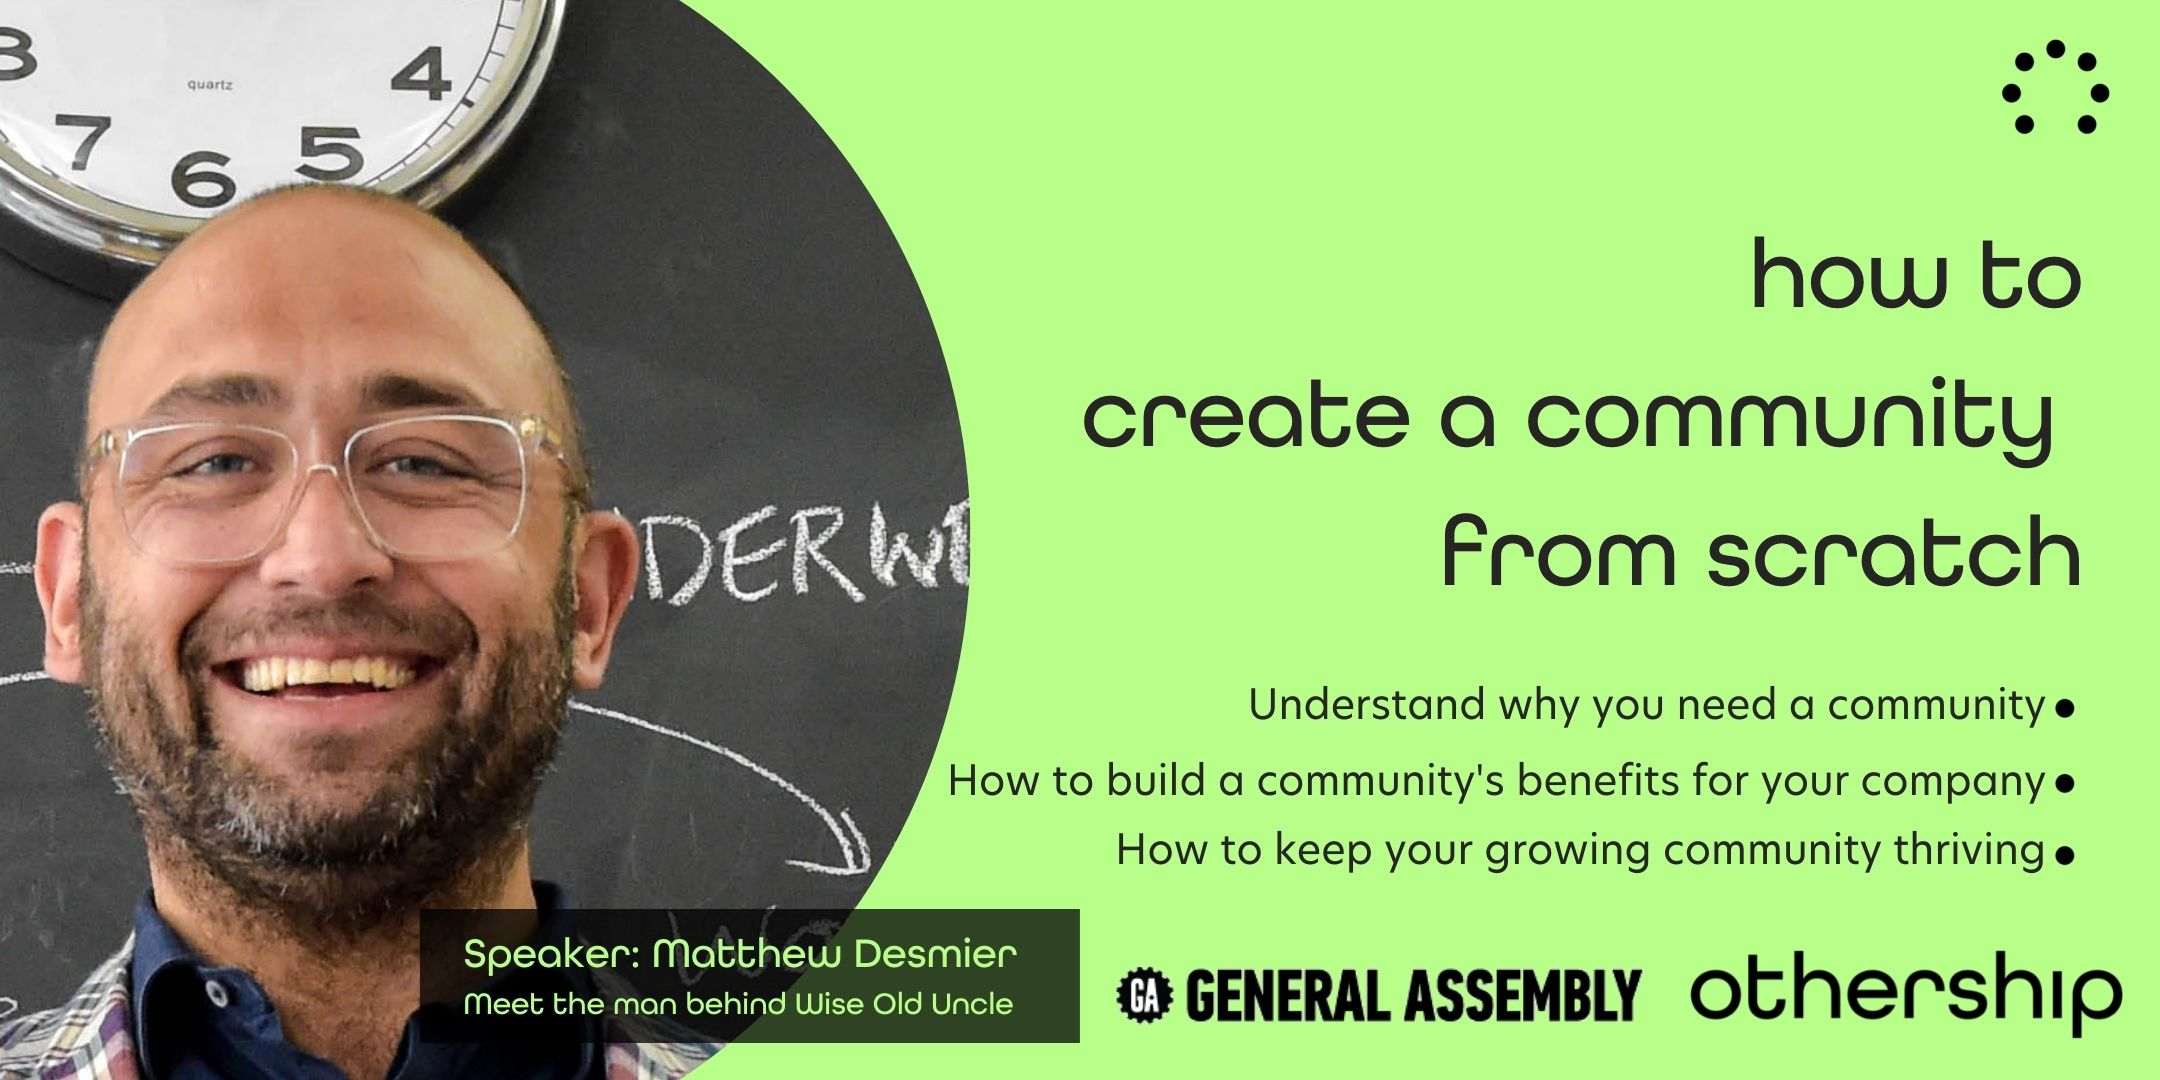 how to create a community from scratch